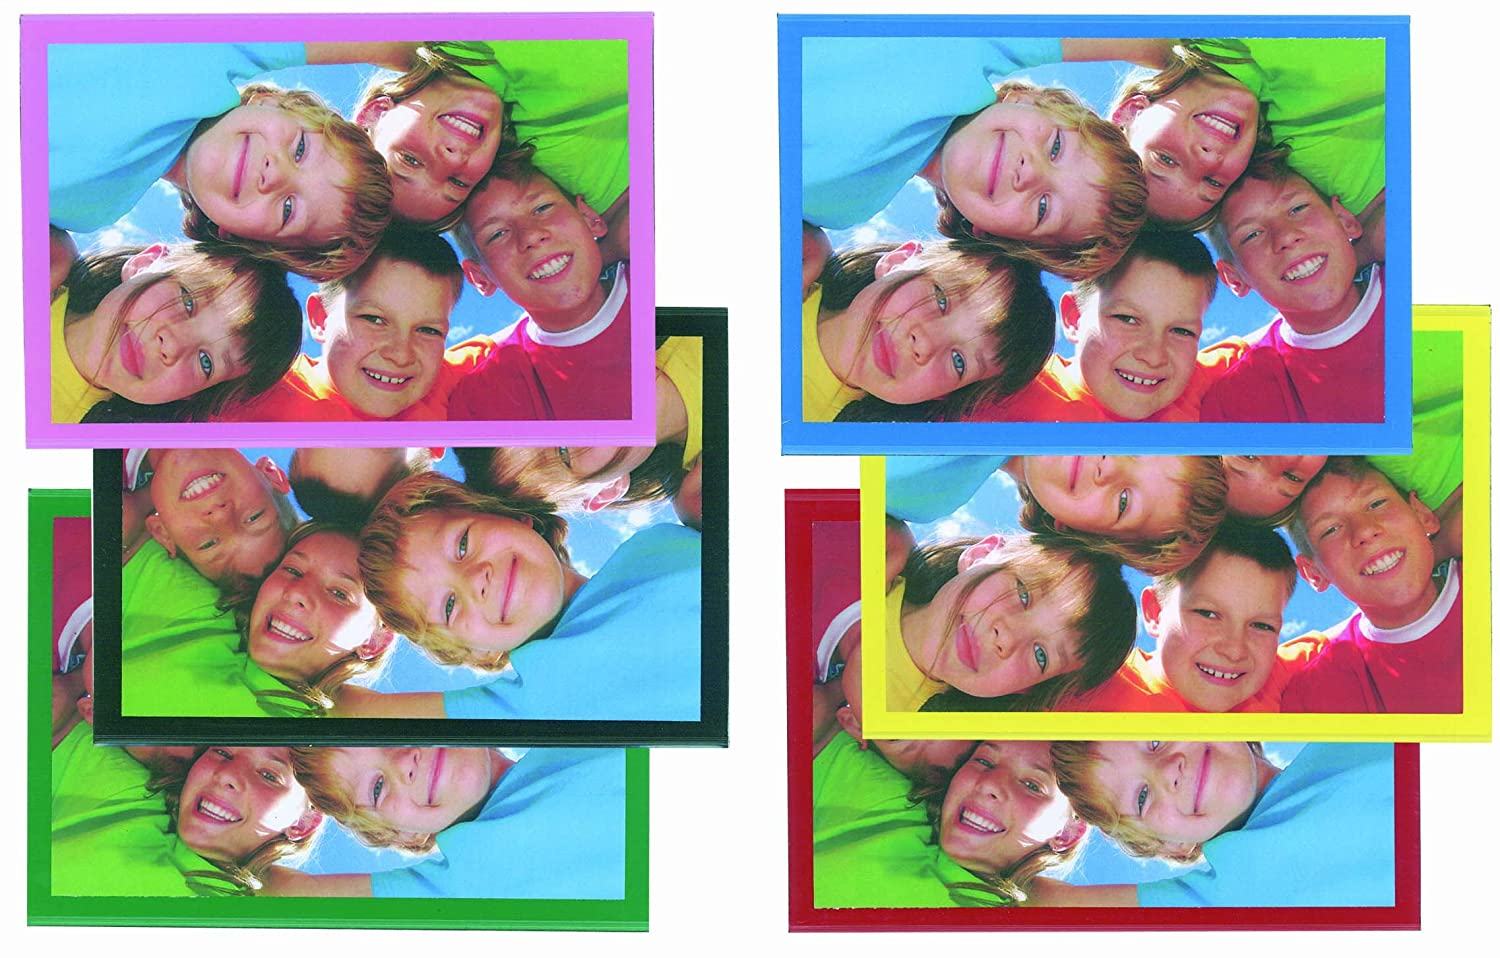 Magtech Magnetic Photo Pockets, Assorted Colors: Black, Blue, Yellow, Pink, Red and Green, Holds 4 x 6 Inches Photos, 6 Pack (99466)